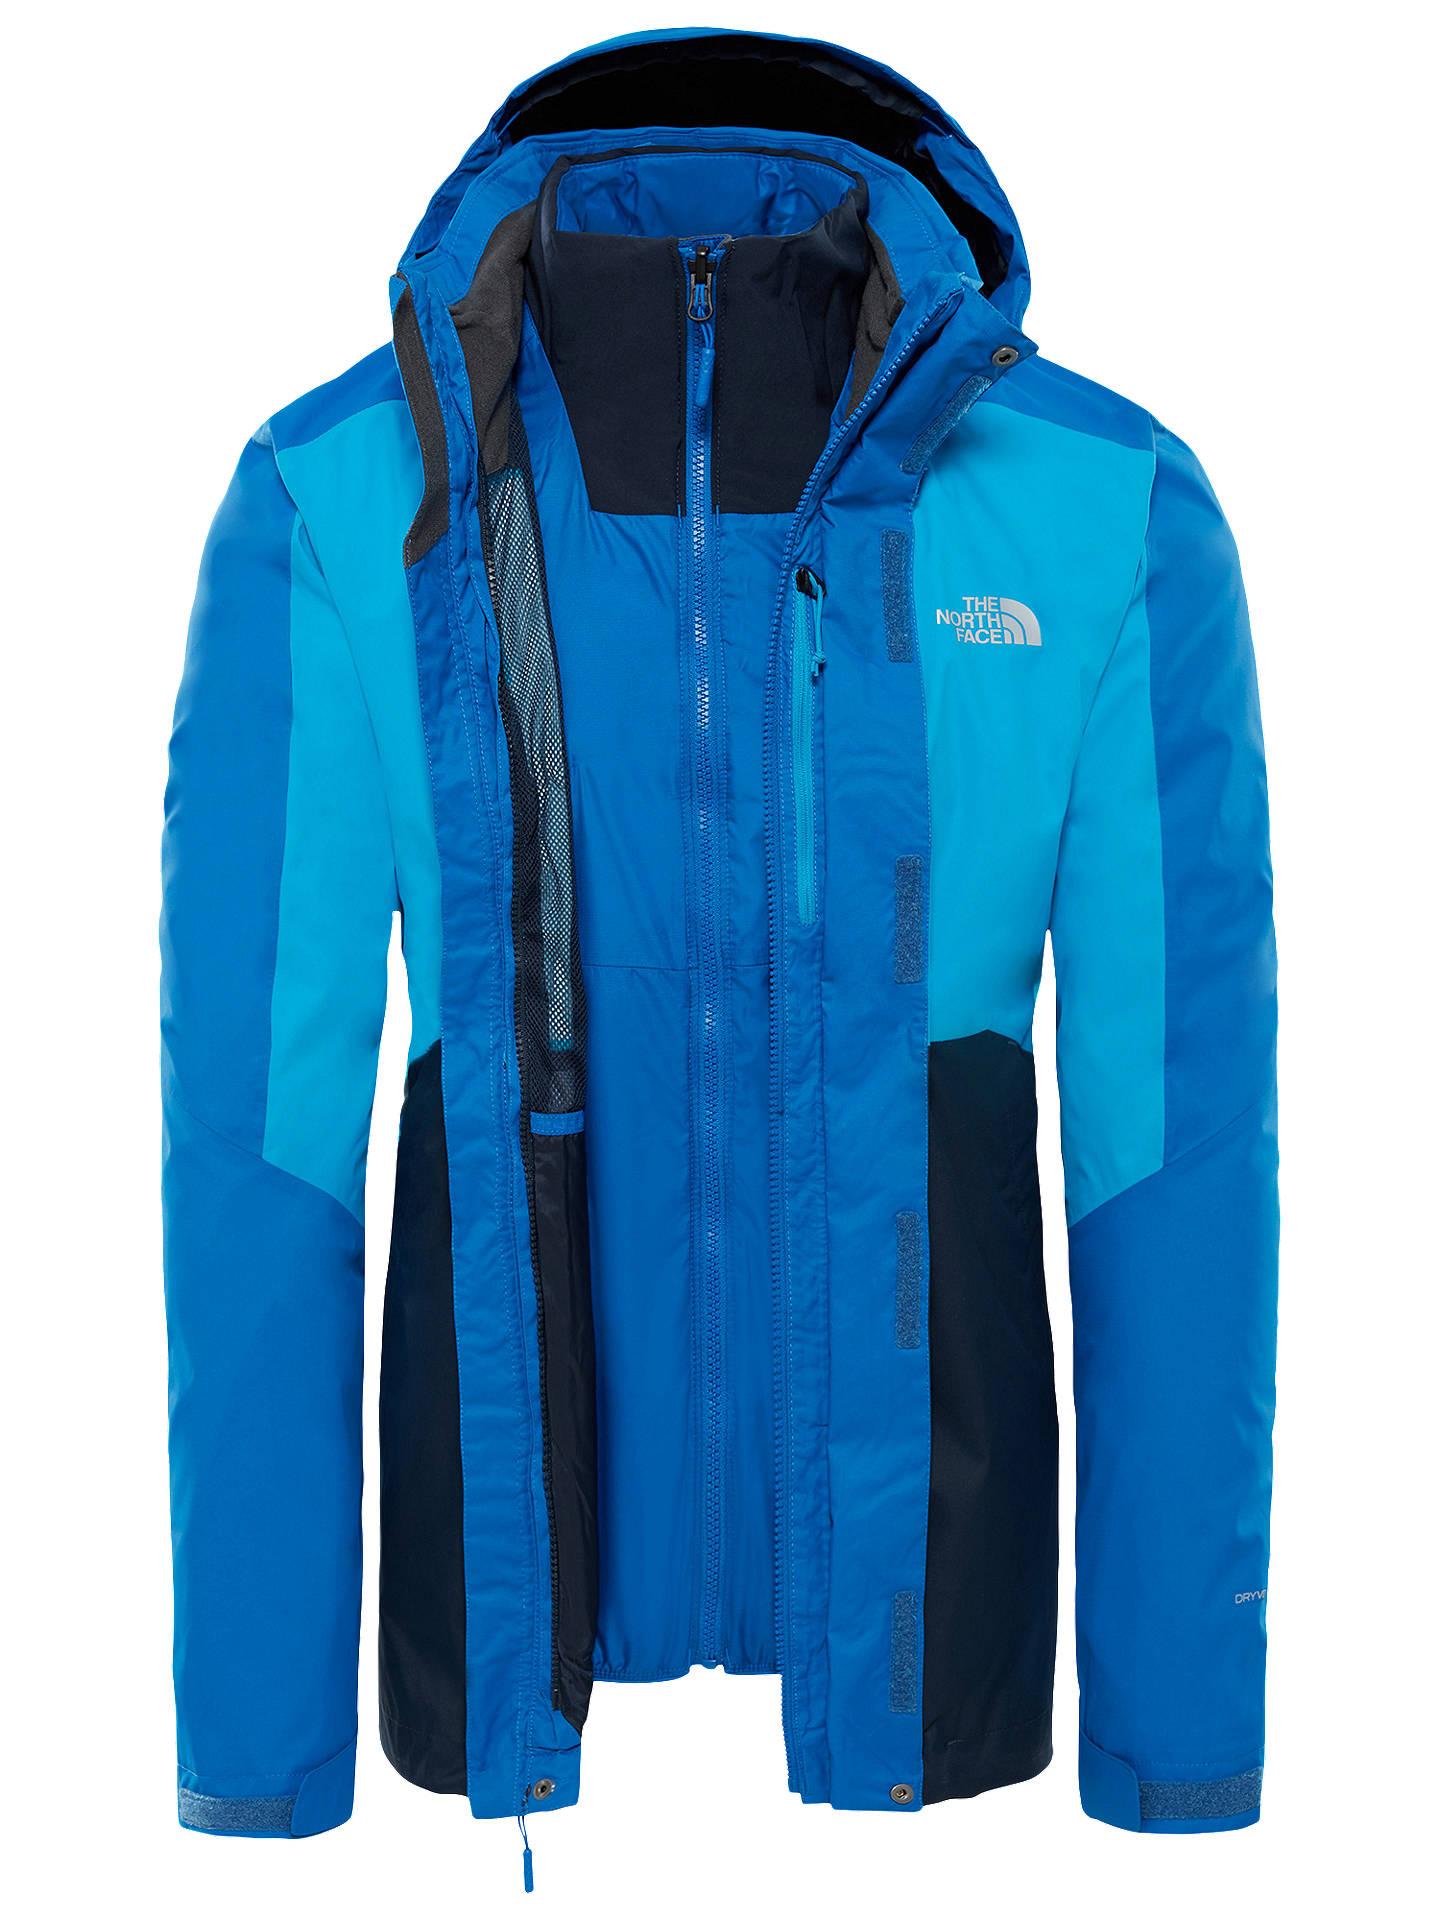 6a1873ee1adf ... hot buythe north face kabru triclimate mens jacket bright blue xl online  at johnlewis. 6c051